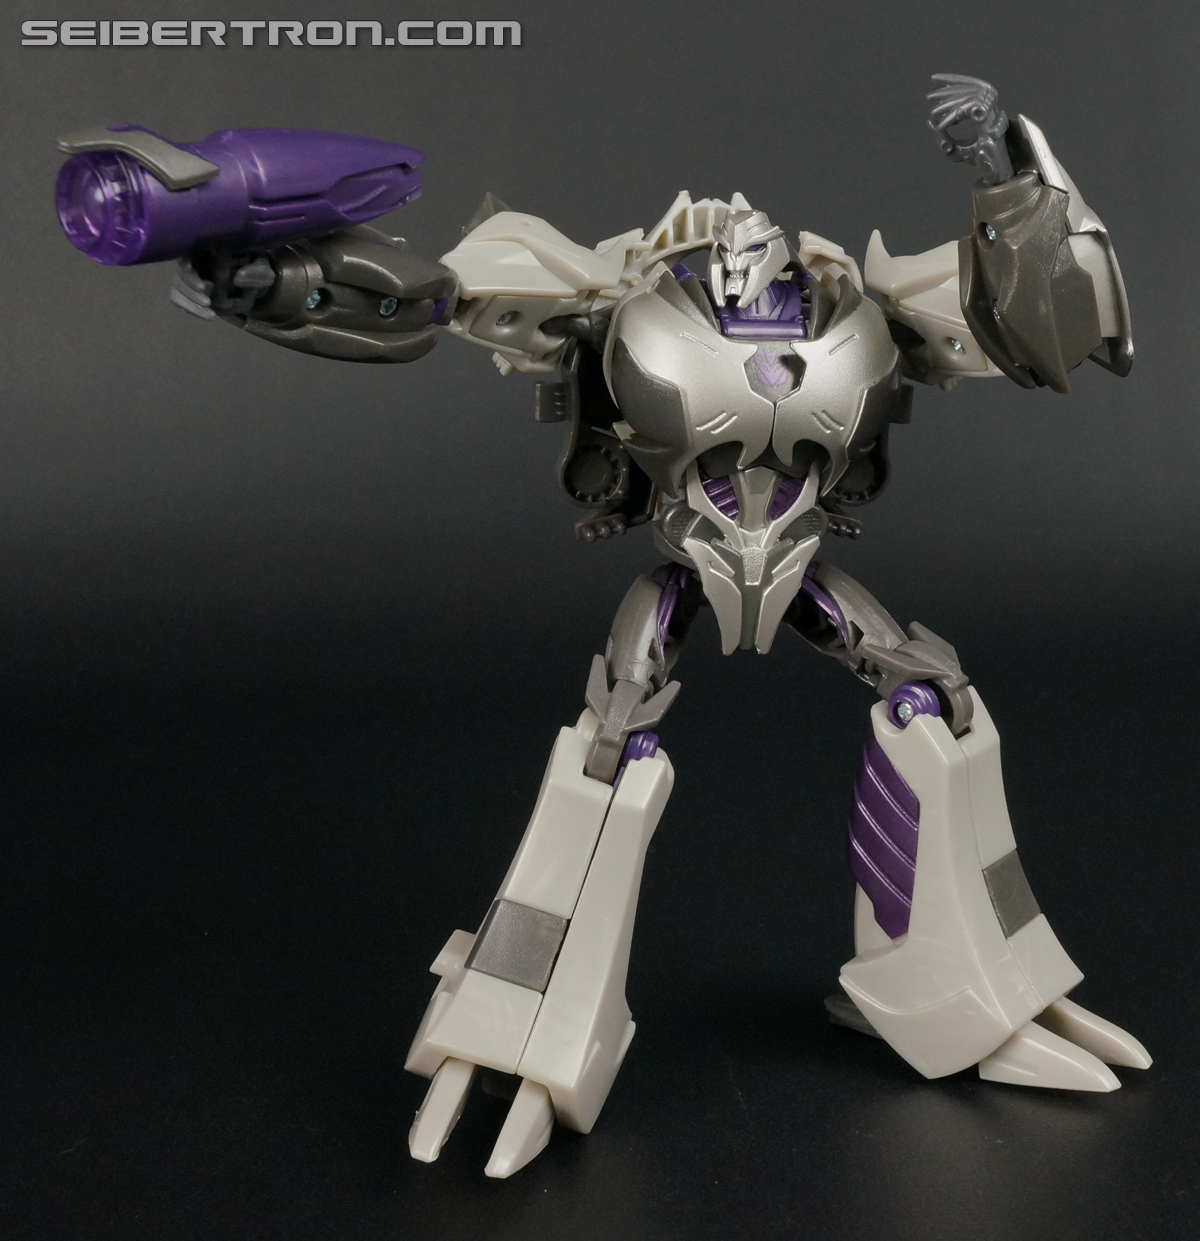 Transformers First Edition Megatron (Image #115 of 165)